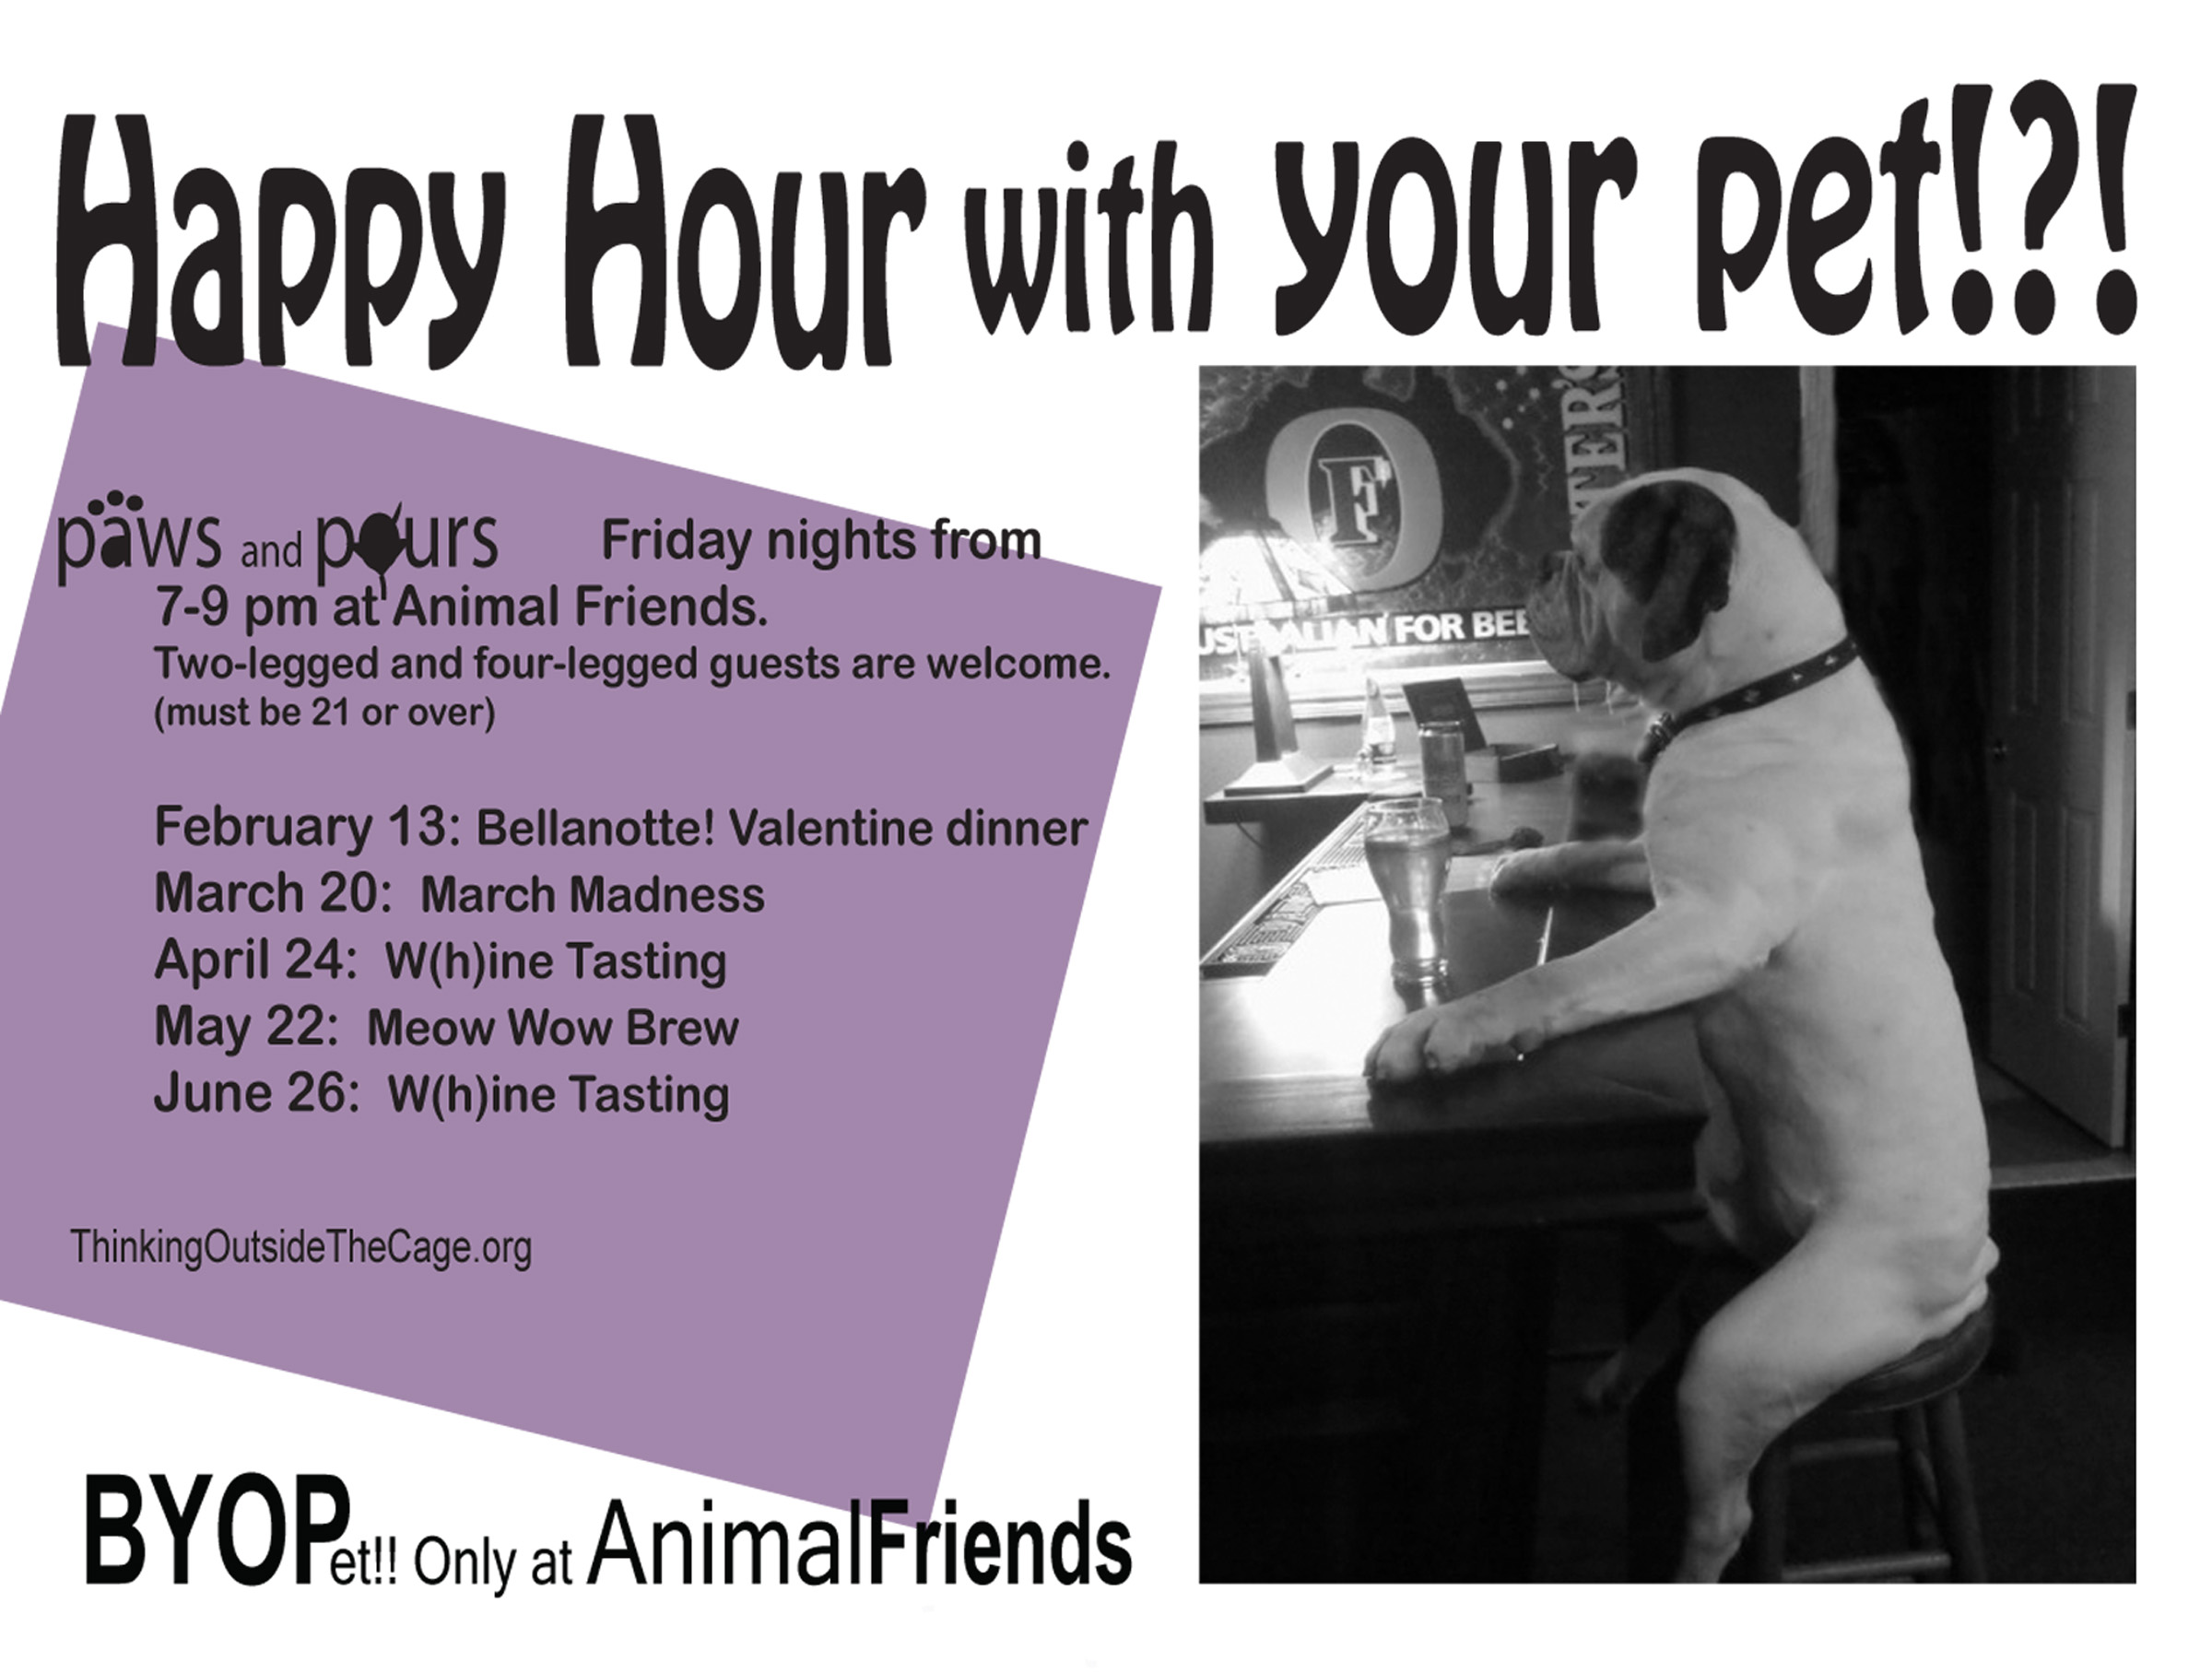 Happy Hour with Your Pet?